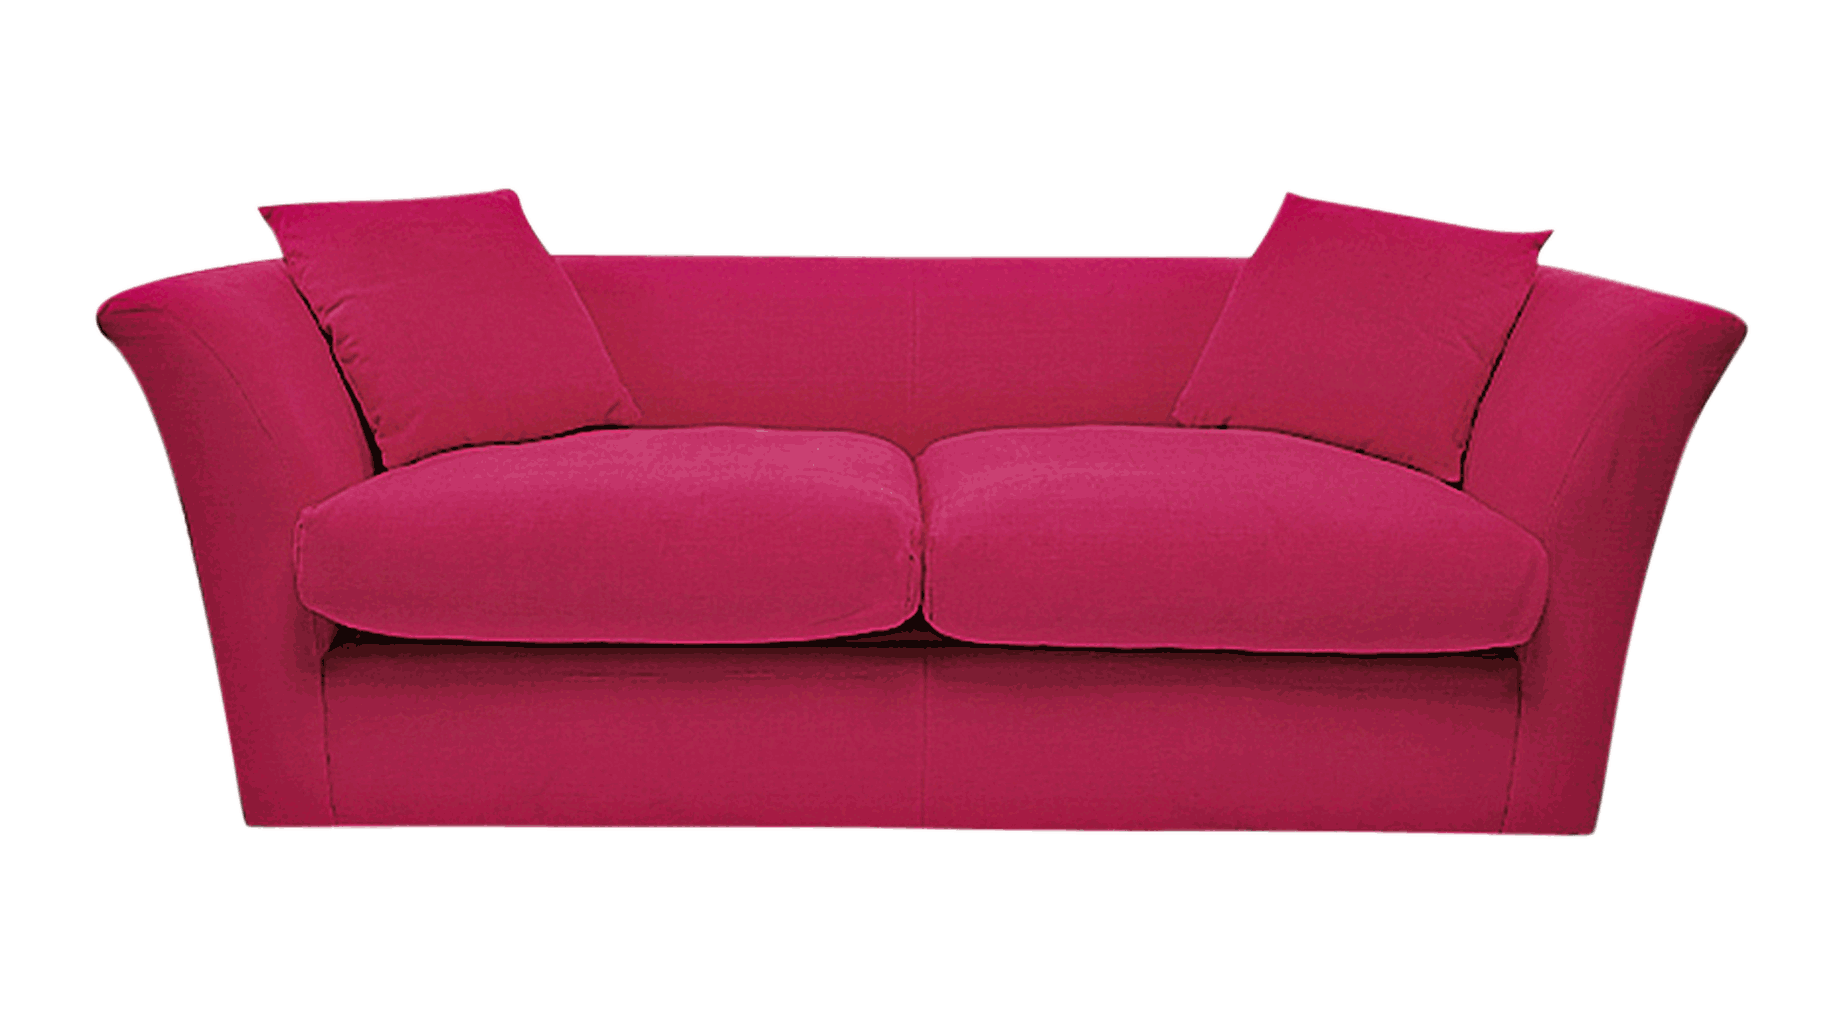 The best looking Sofa Bed I have ever seen Designed by Terence